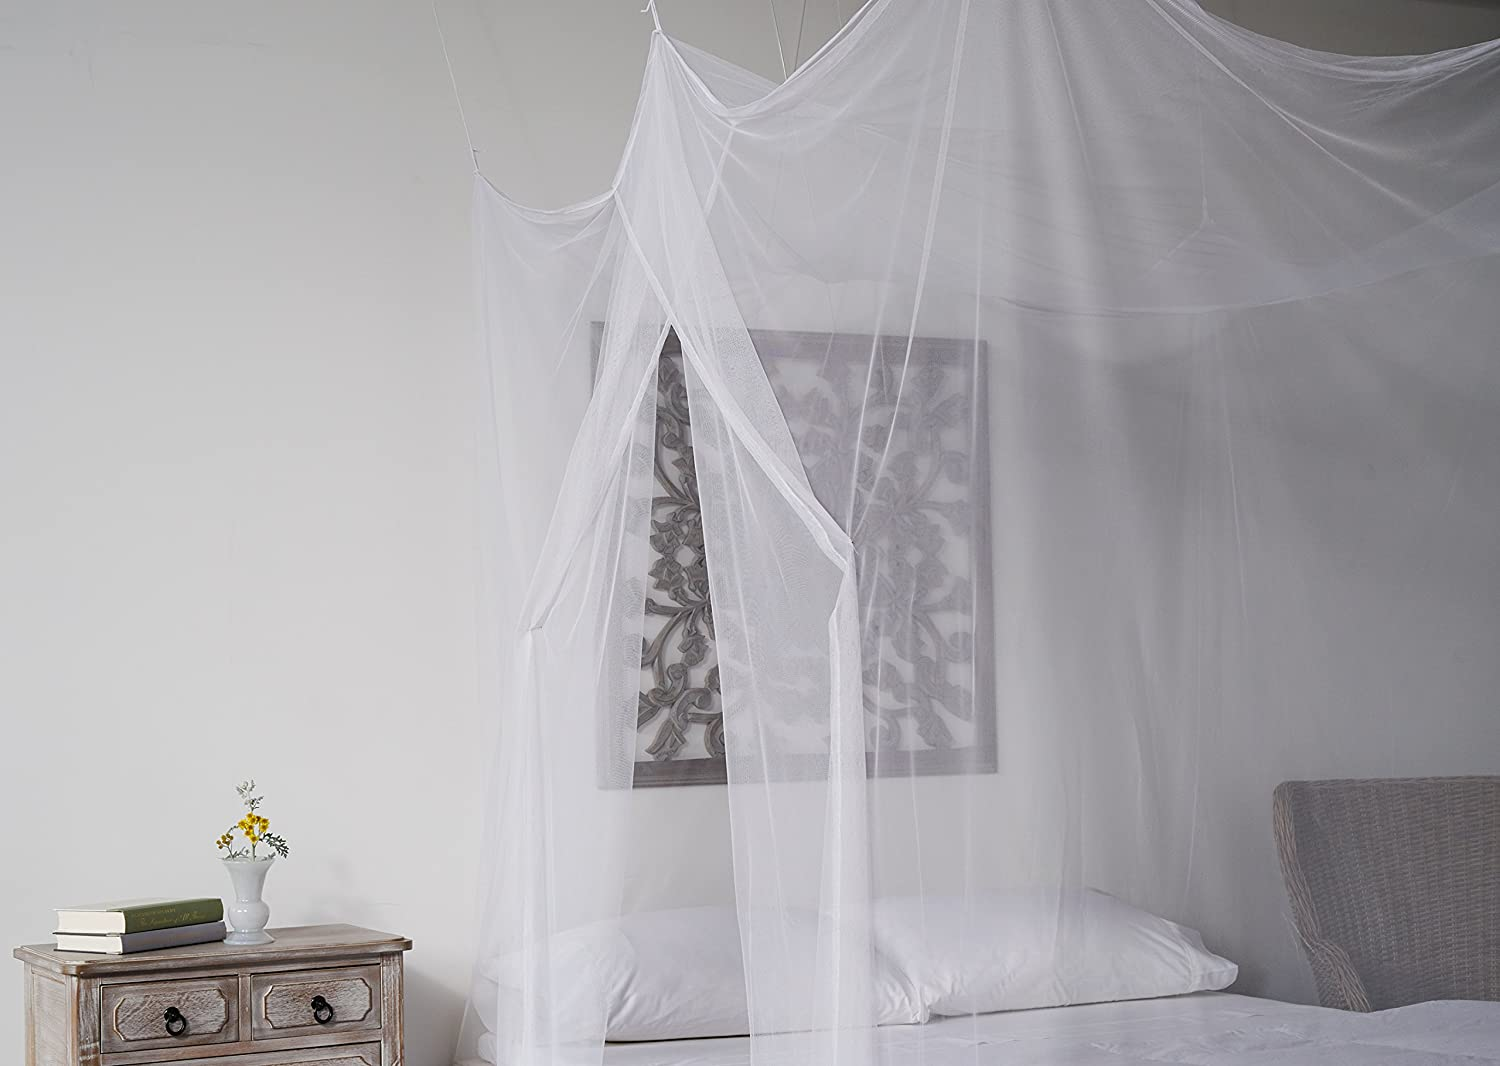 amazon com mosquito net bed canopy bug screen repellant amazon com mosquito net bed canopy bug screen repellant rectangle curtains for twin full queen king beds repels insects carrying malaria